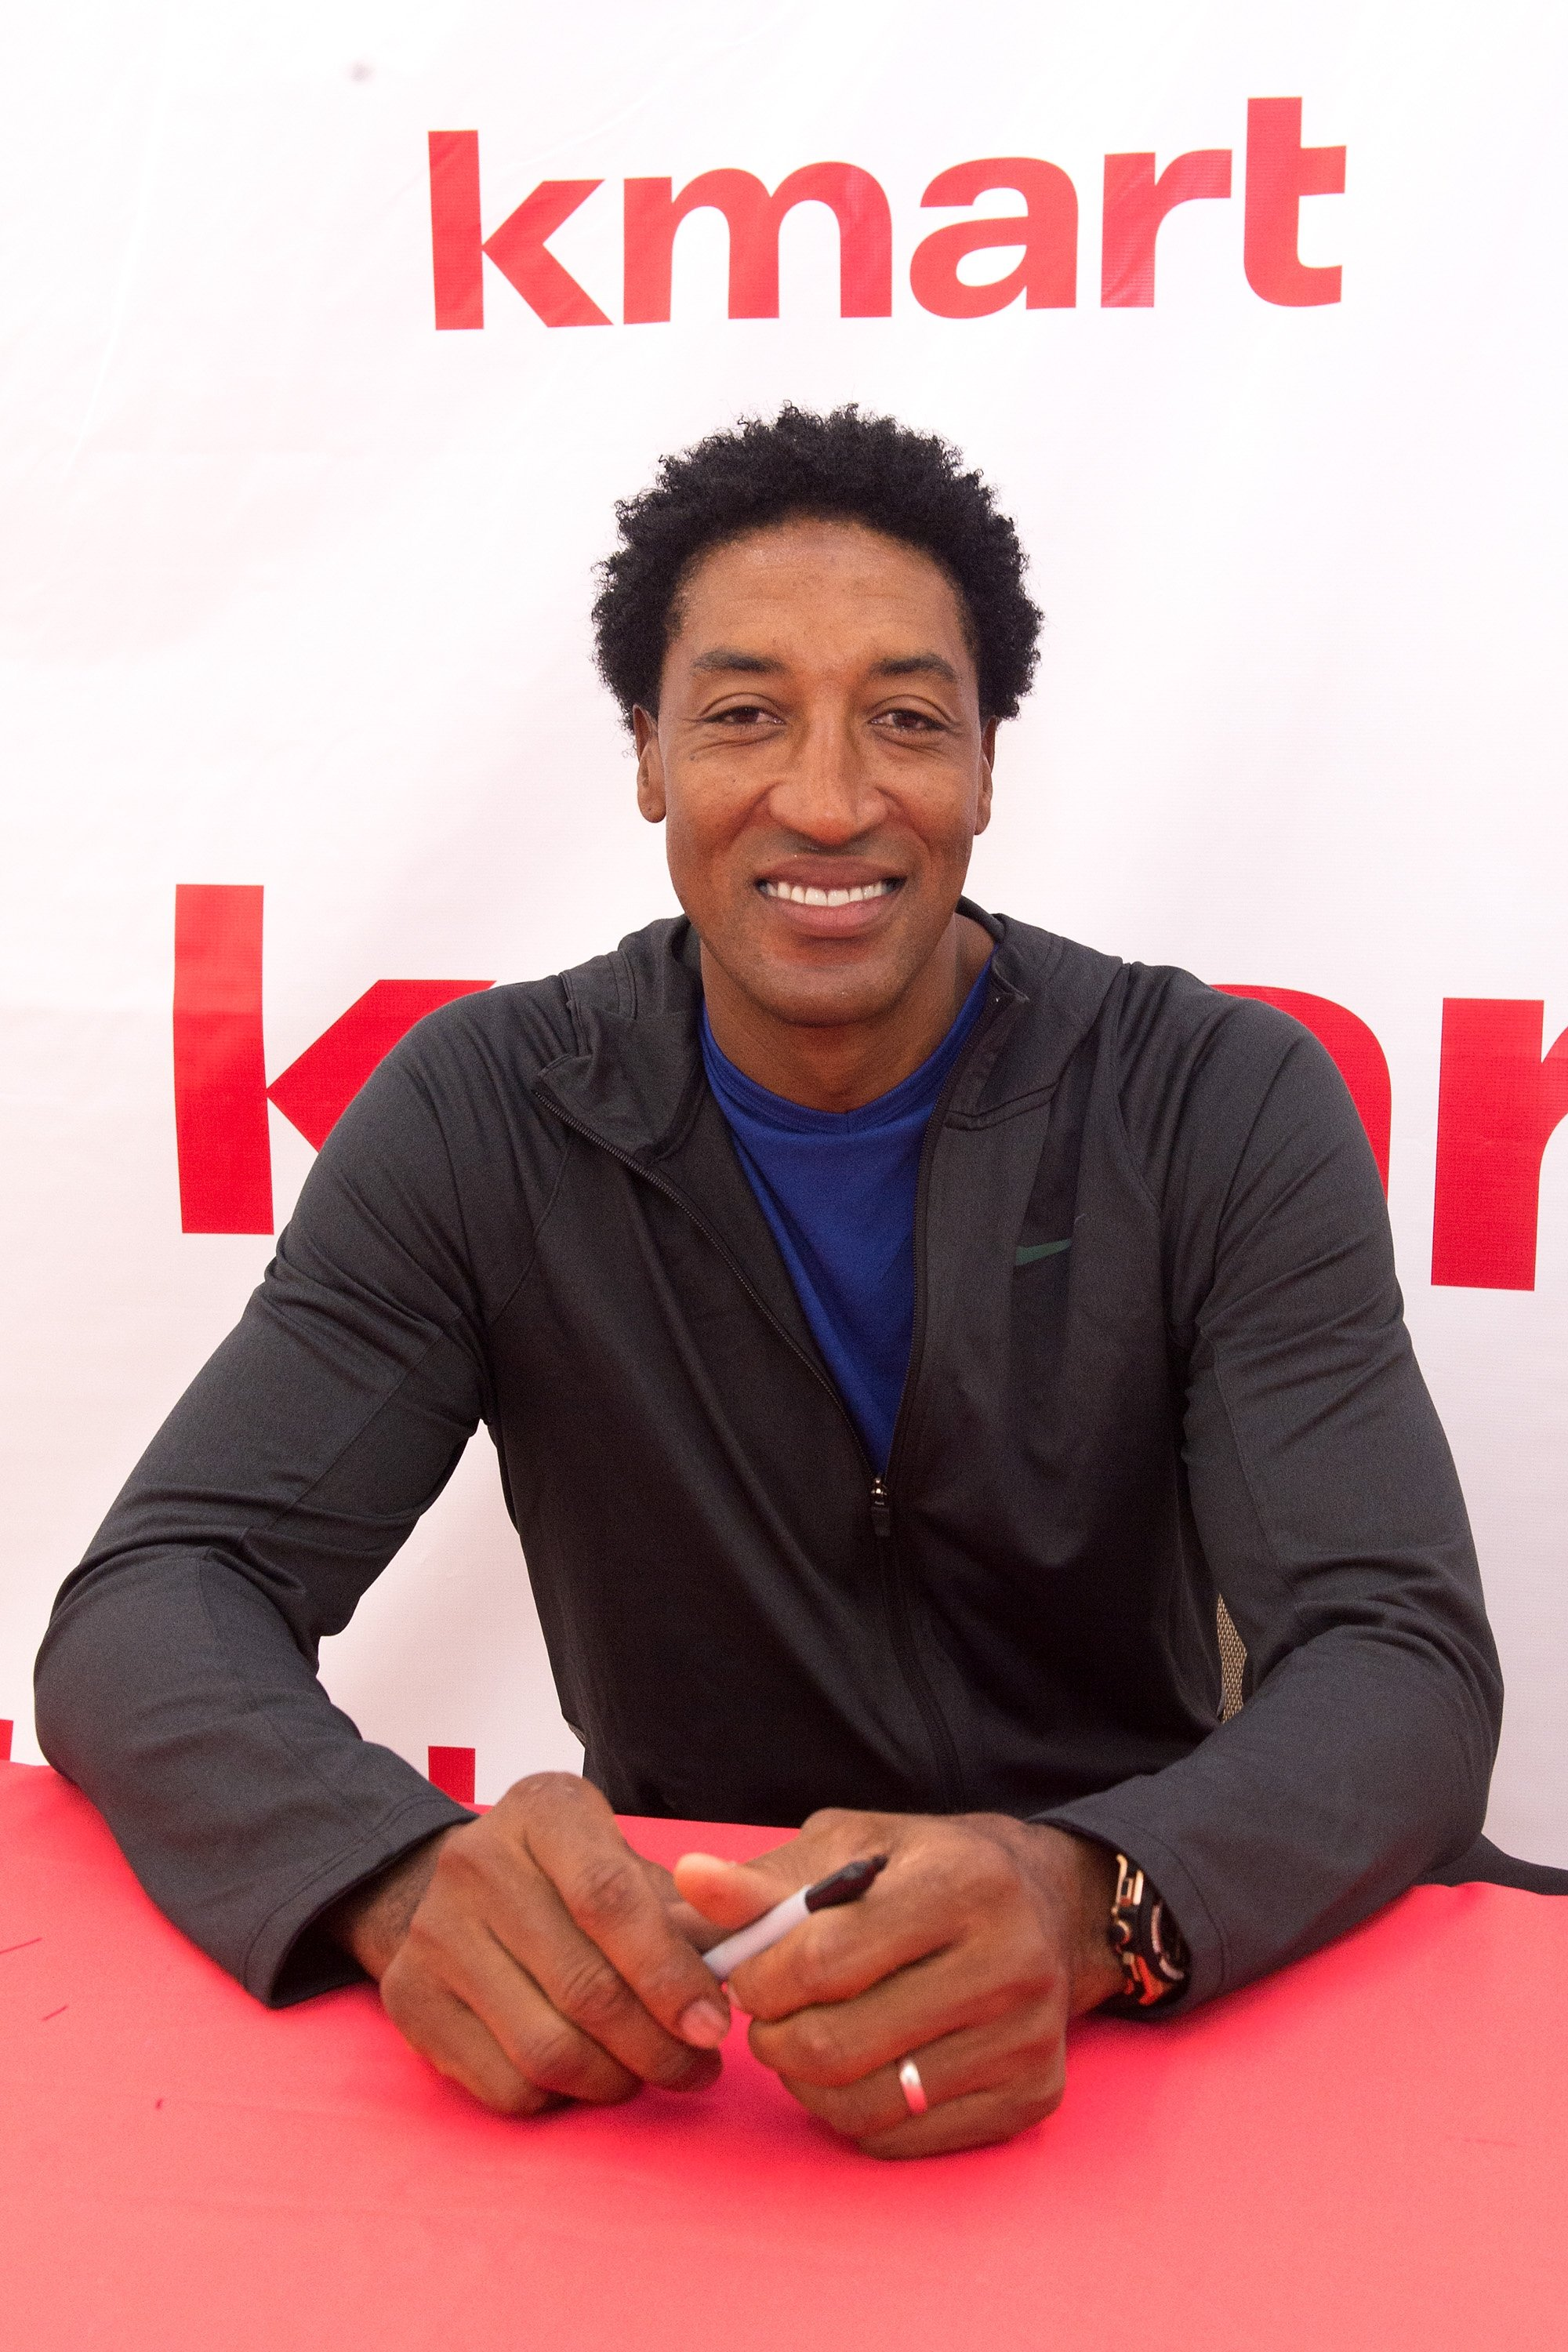 Image Credits: Getty Images / Daniel Boczarski | Scottie Pippen attends 'A Whole Lotta Awesome' At Re-Grand Opening of Revitalized Kmart Store on August 27, 2016 in Des Plaines, Illinois.